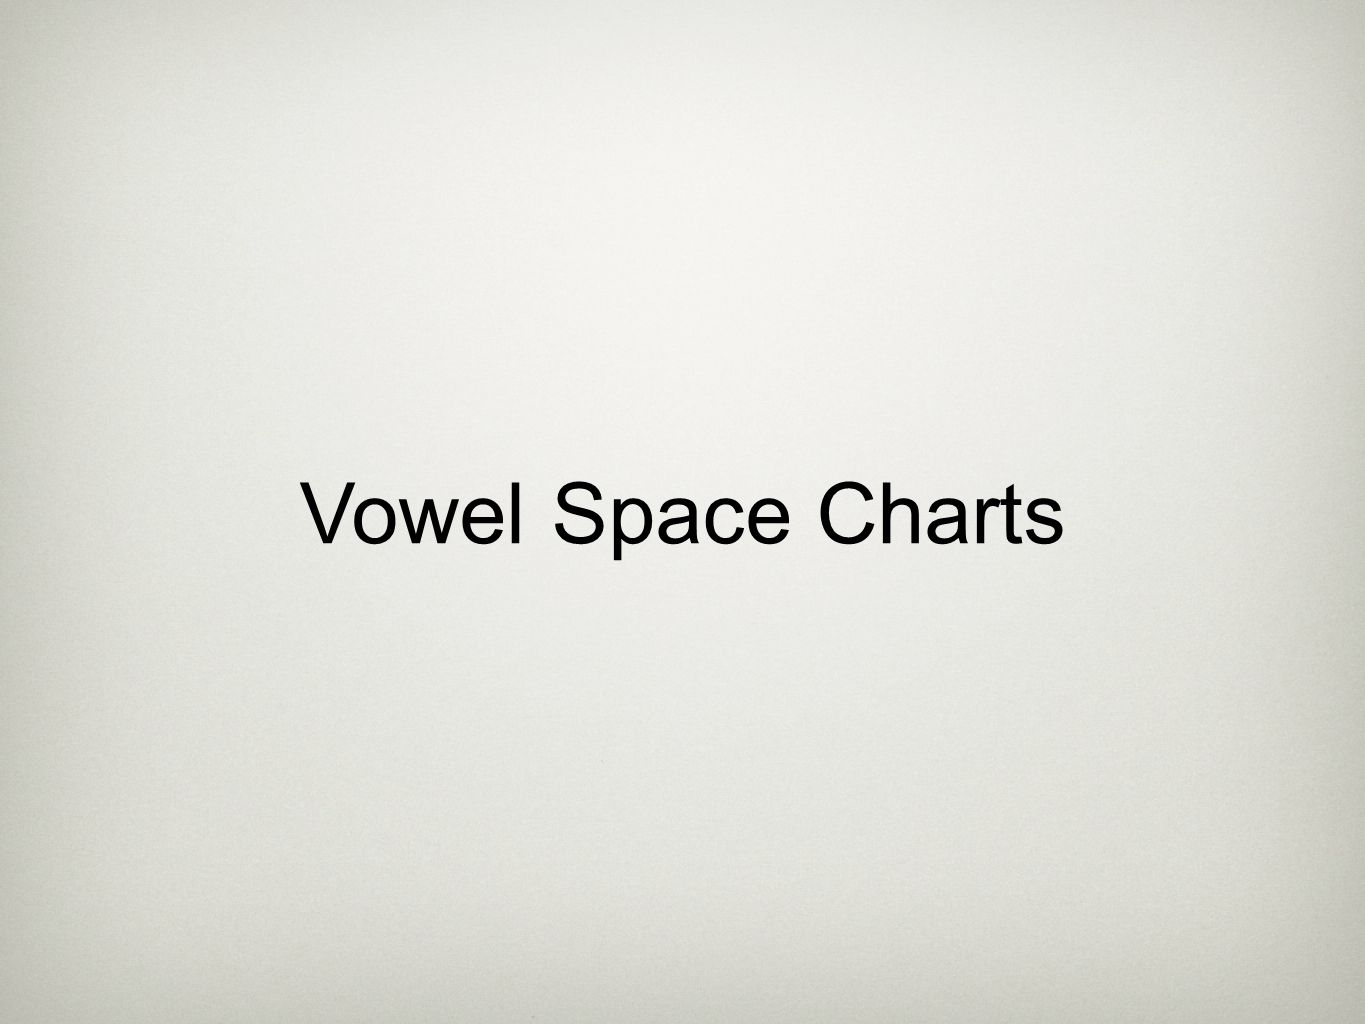 Vowel Space Charts